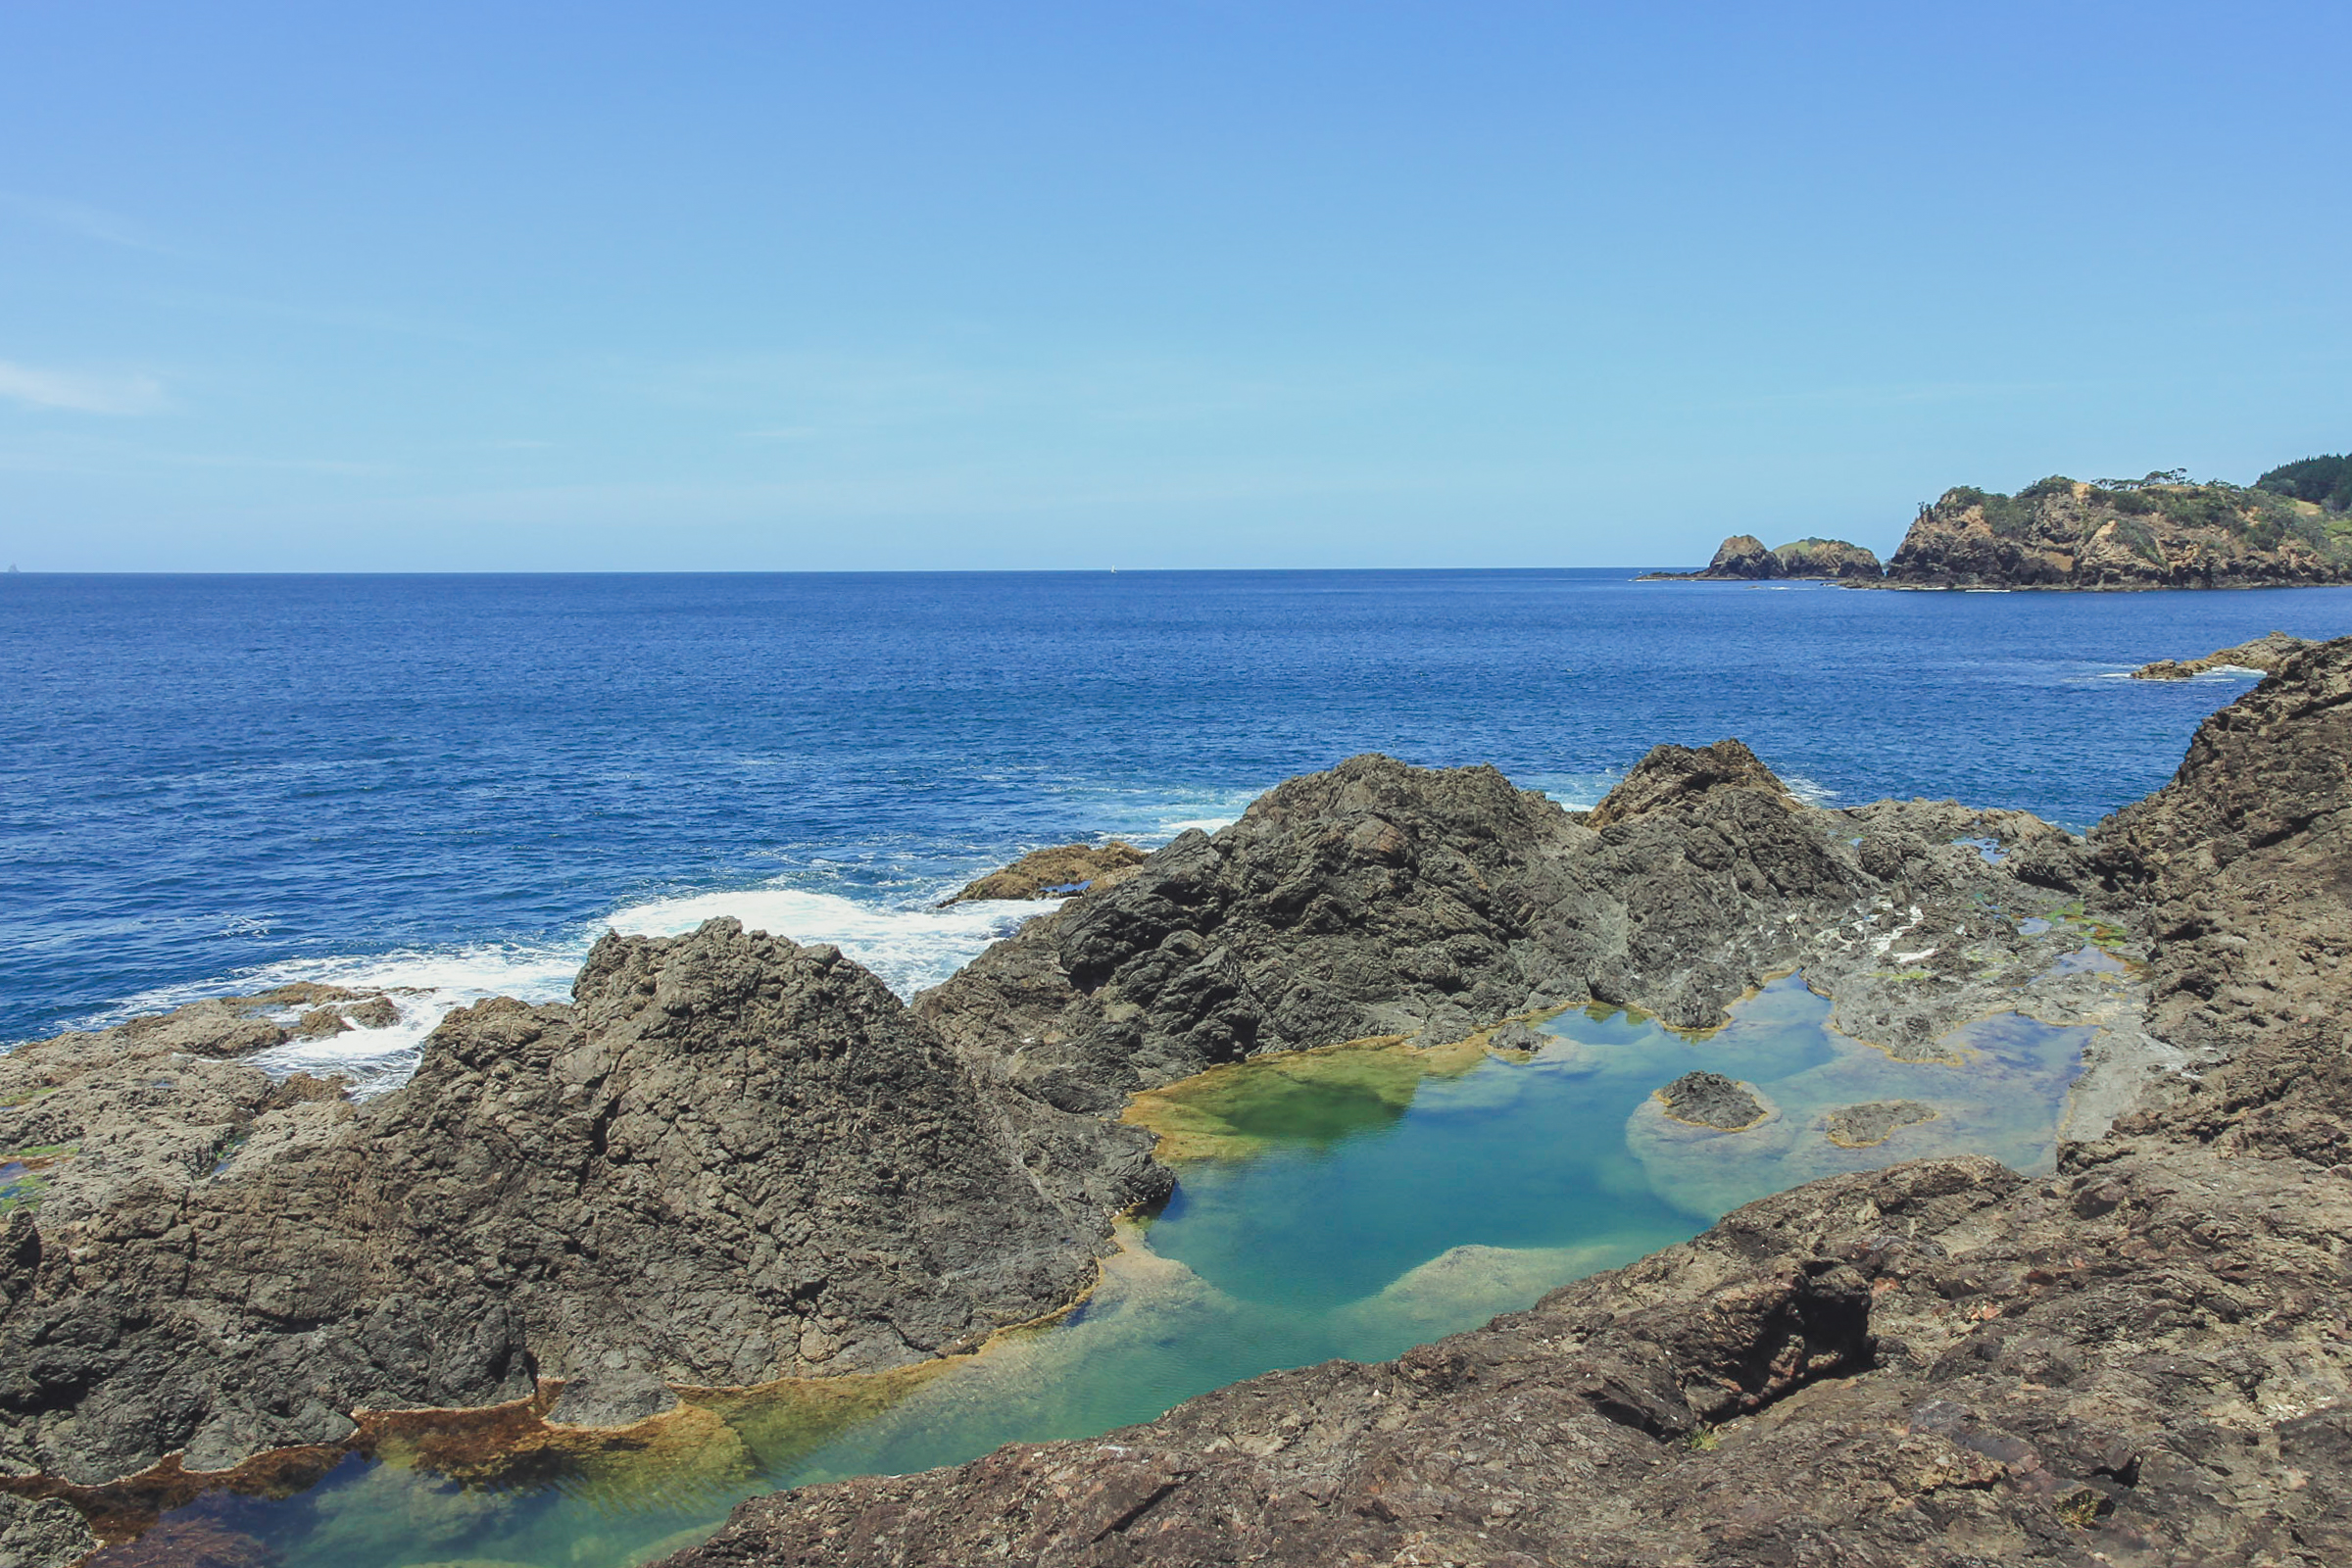 mermaid rock pools